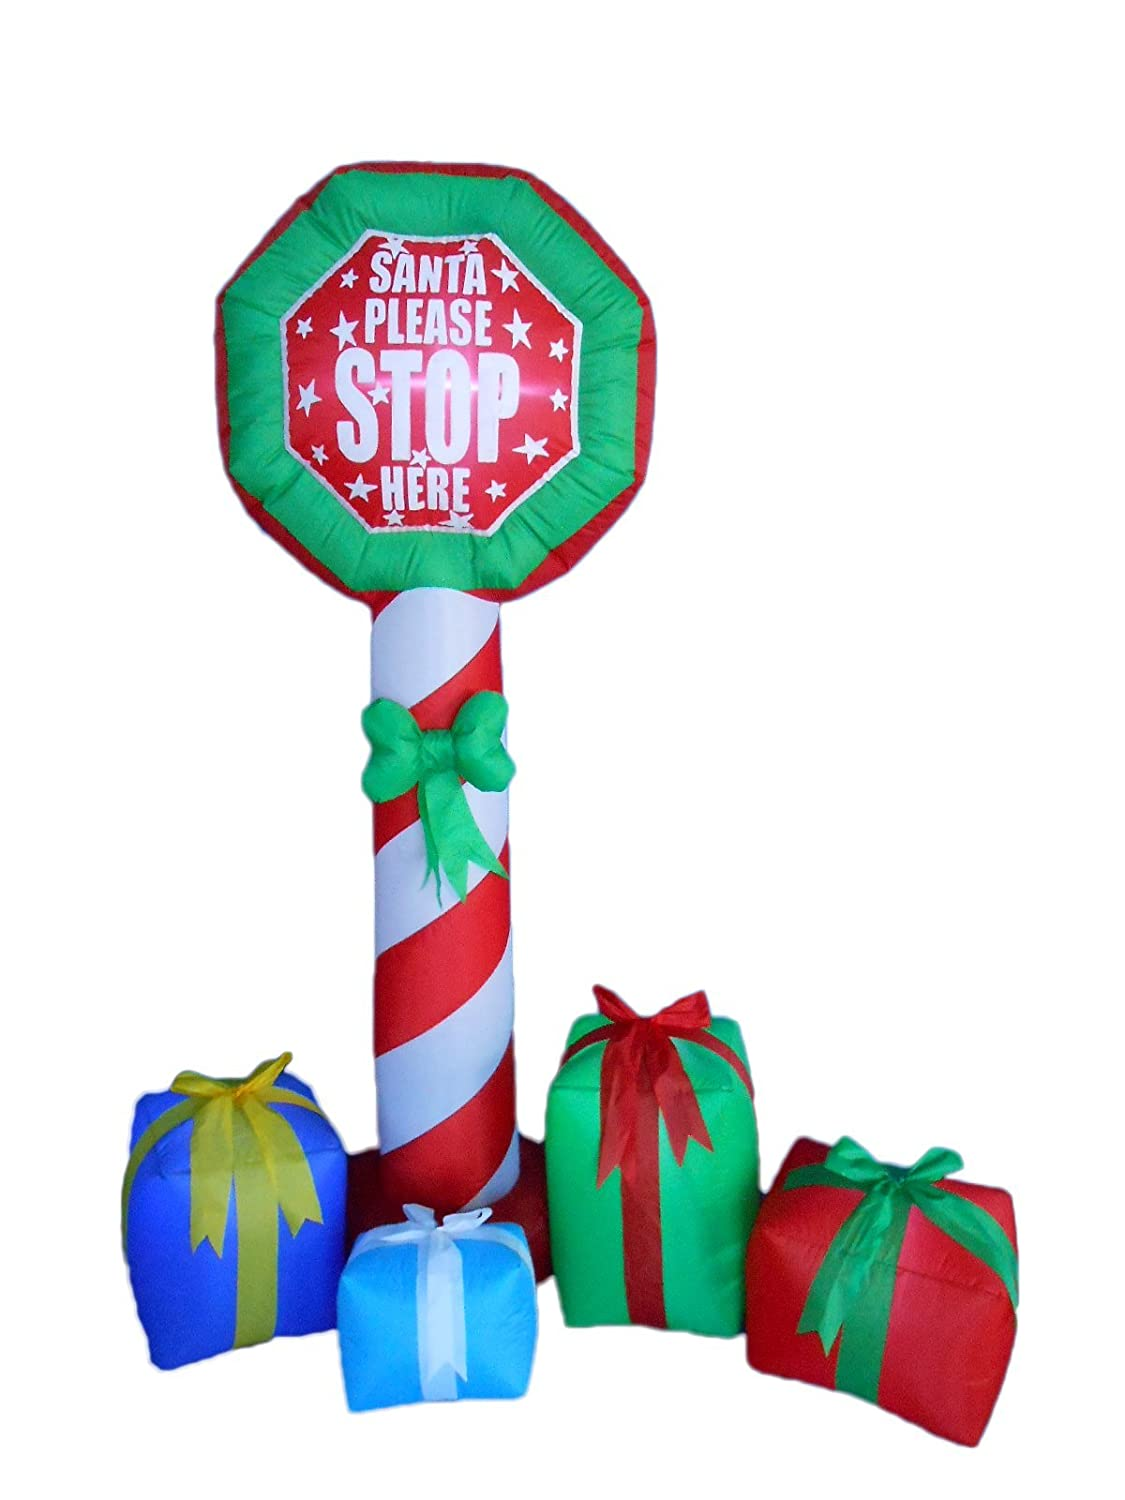 6 Foot Tall Christmas Inflatable Stop Sign Gift Boxes Yard Decoration BZB Goods 100263